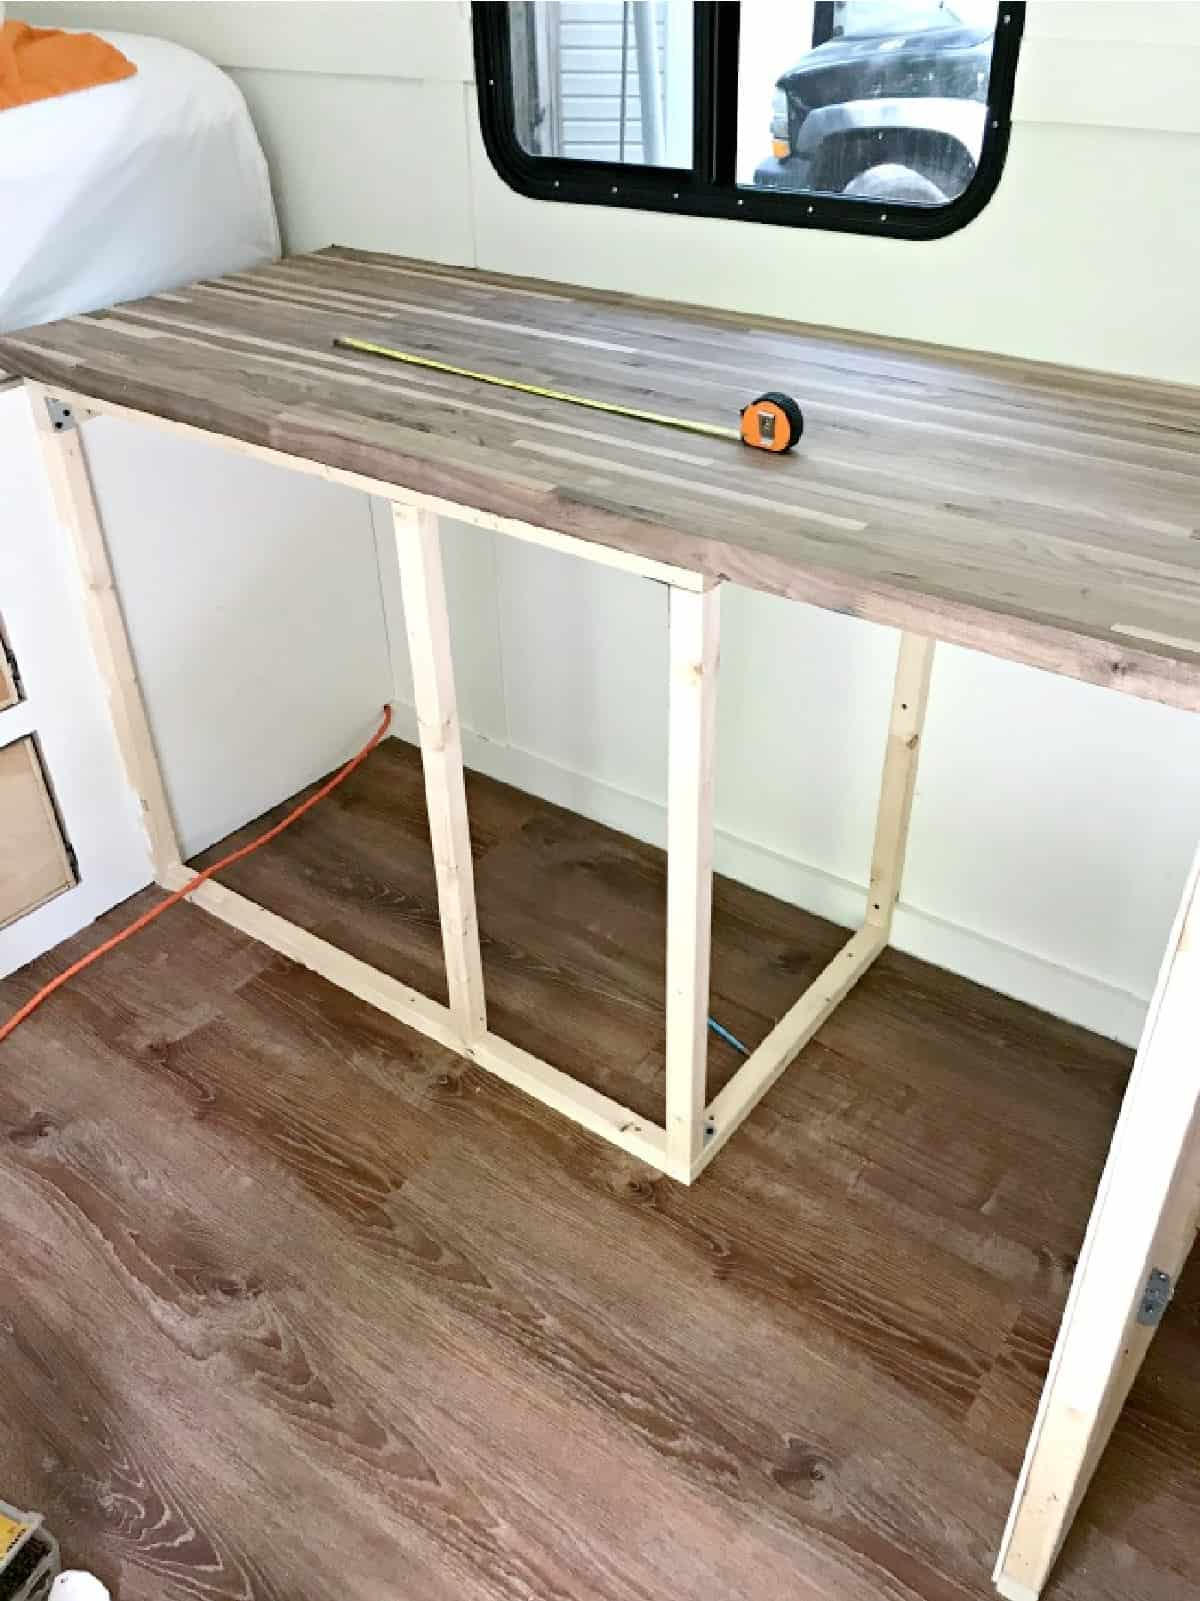 RV kitchen cabinet frame and countertop